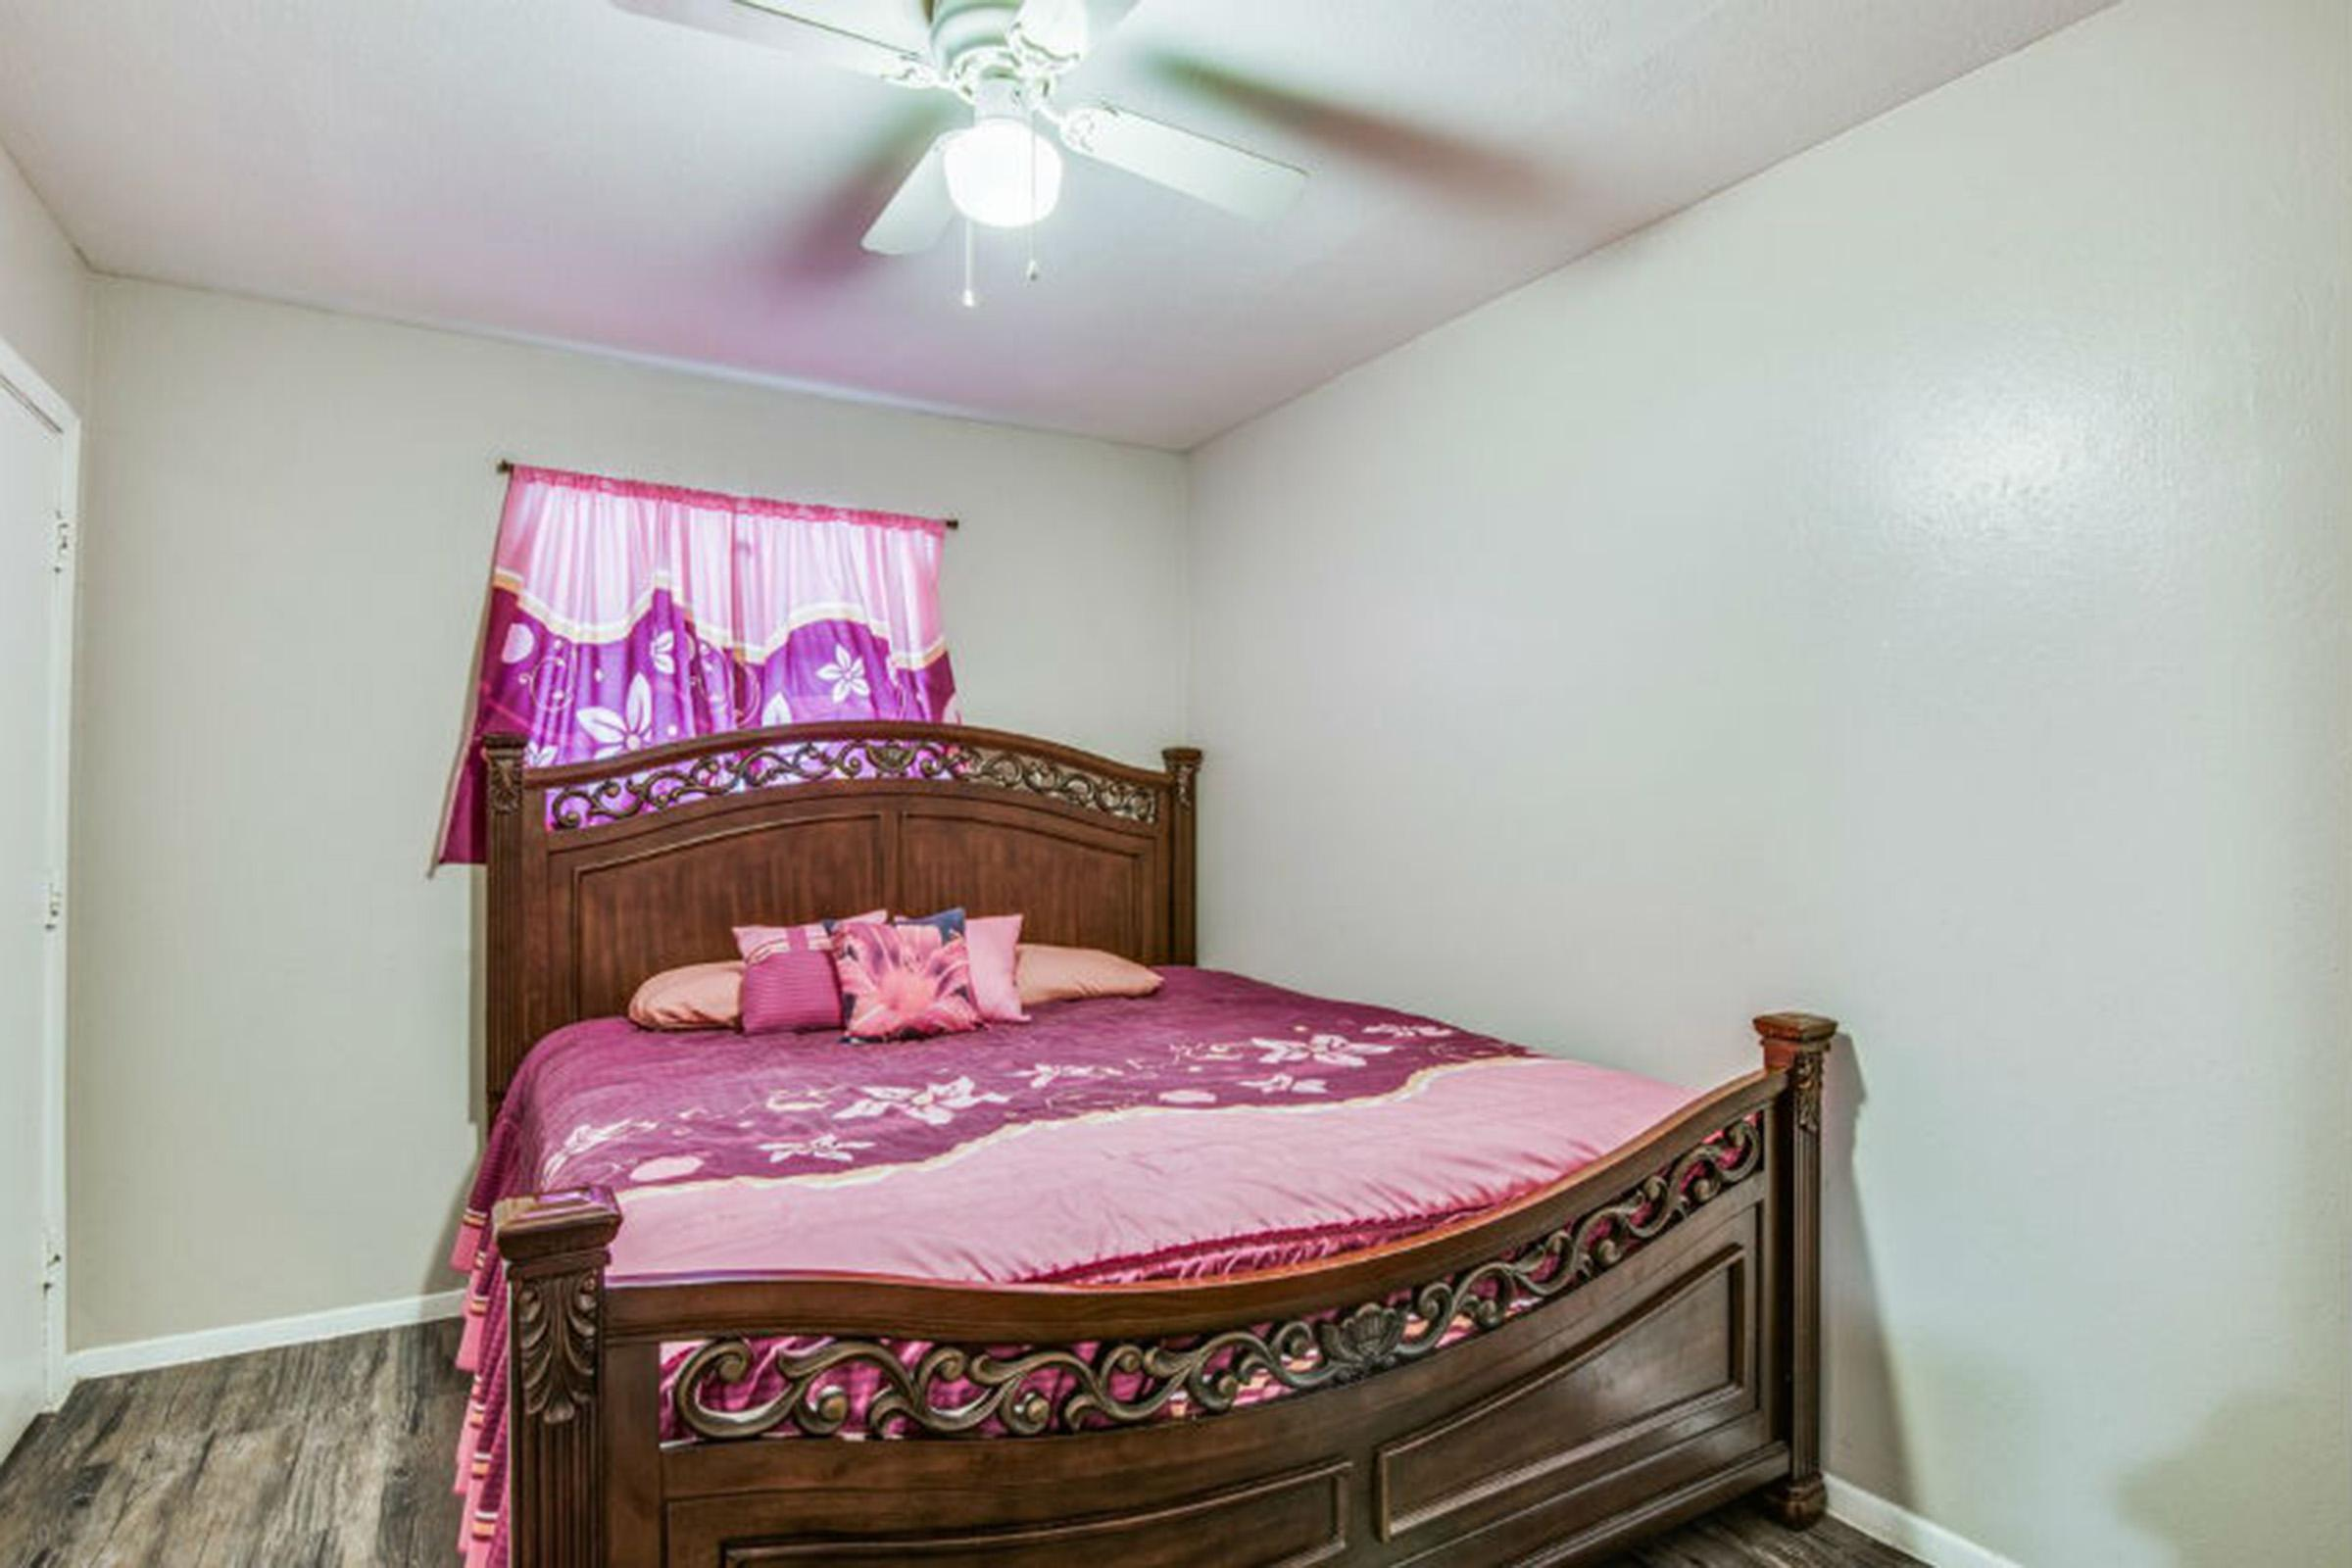 a bedroom with a pink blanket